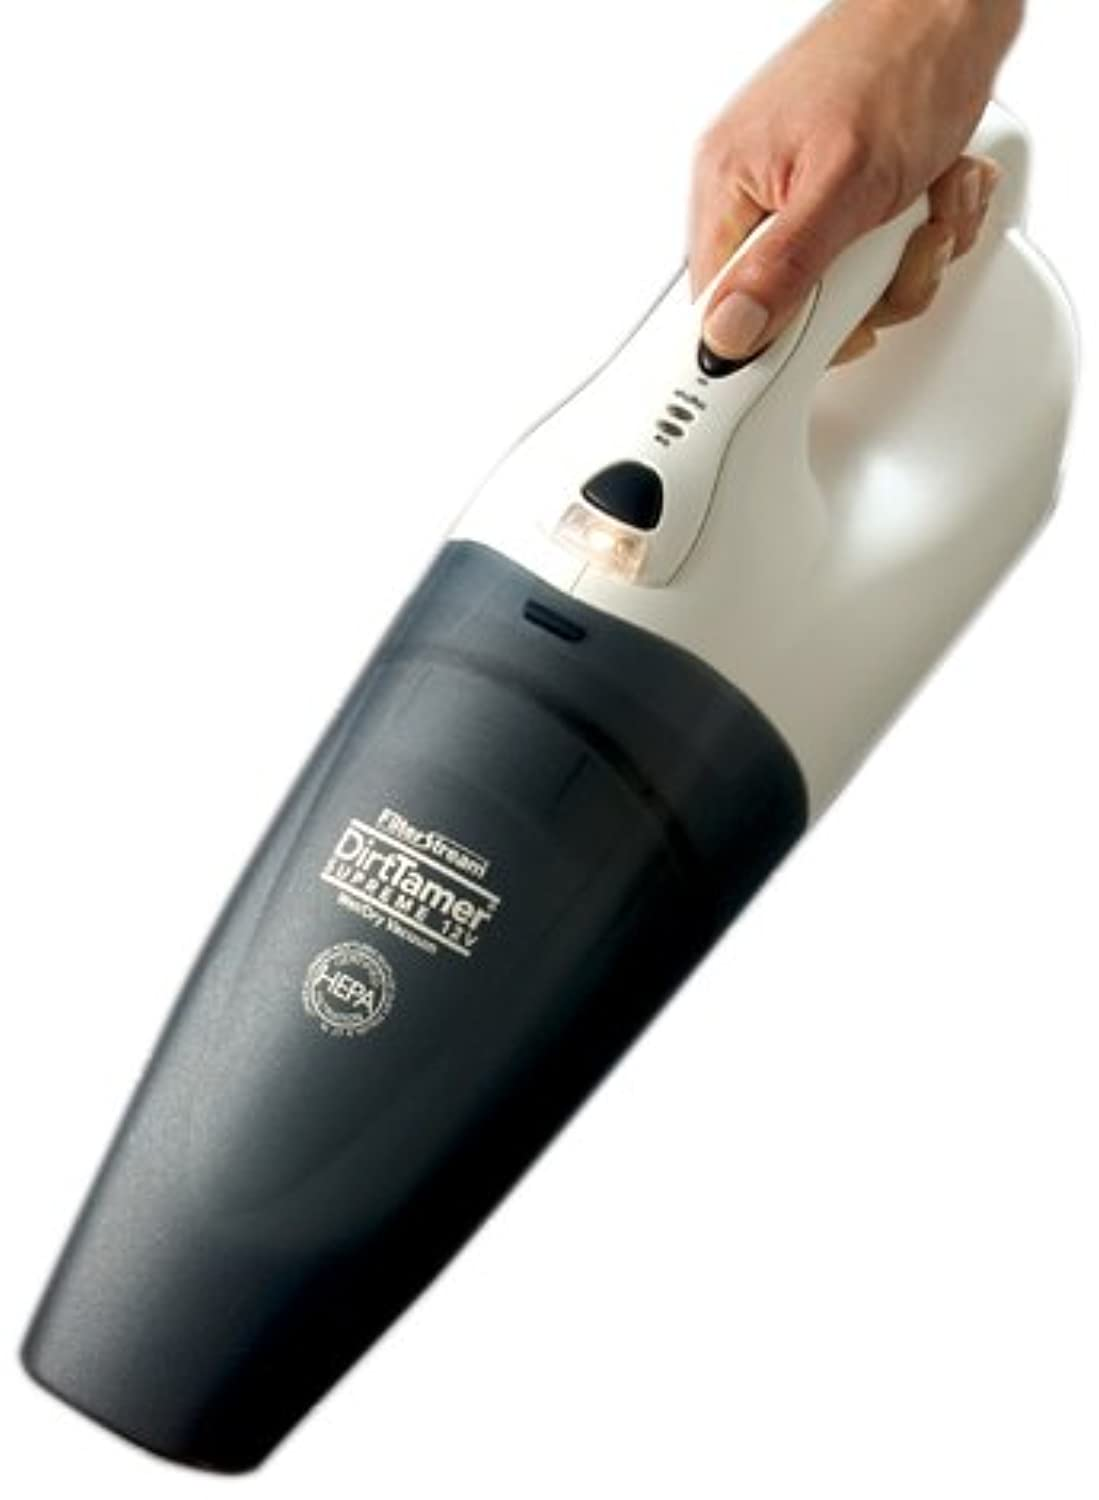 DirtTamer Supreme V2400 Cordless Wet/Dry Hand Vac by FilterStream